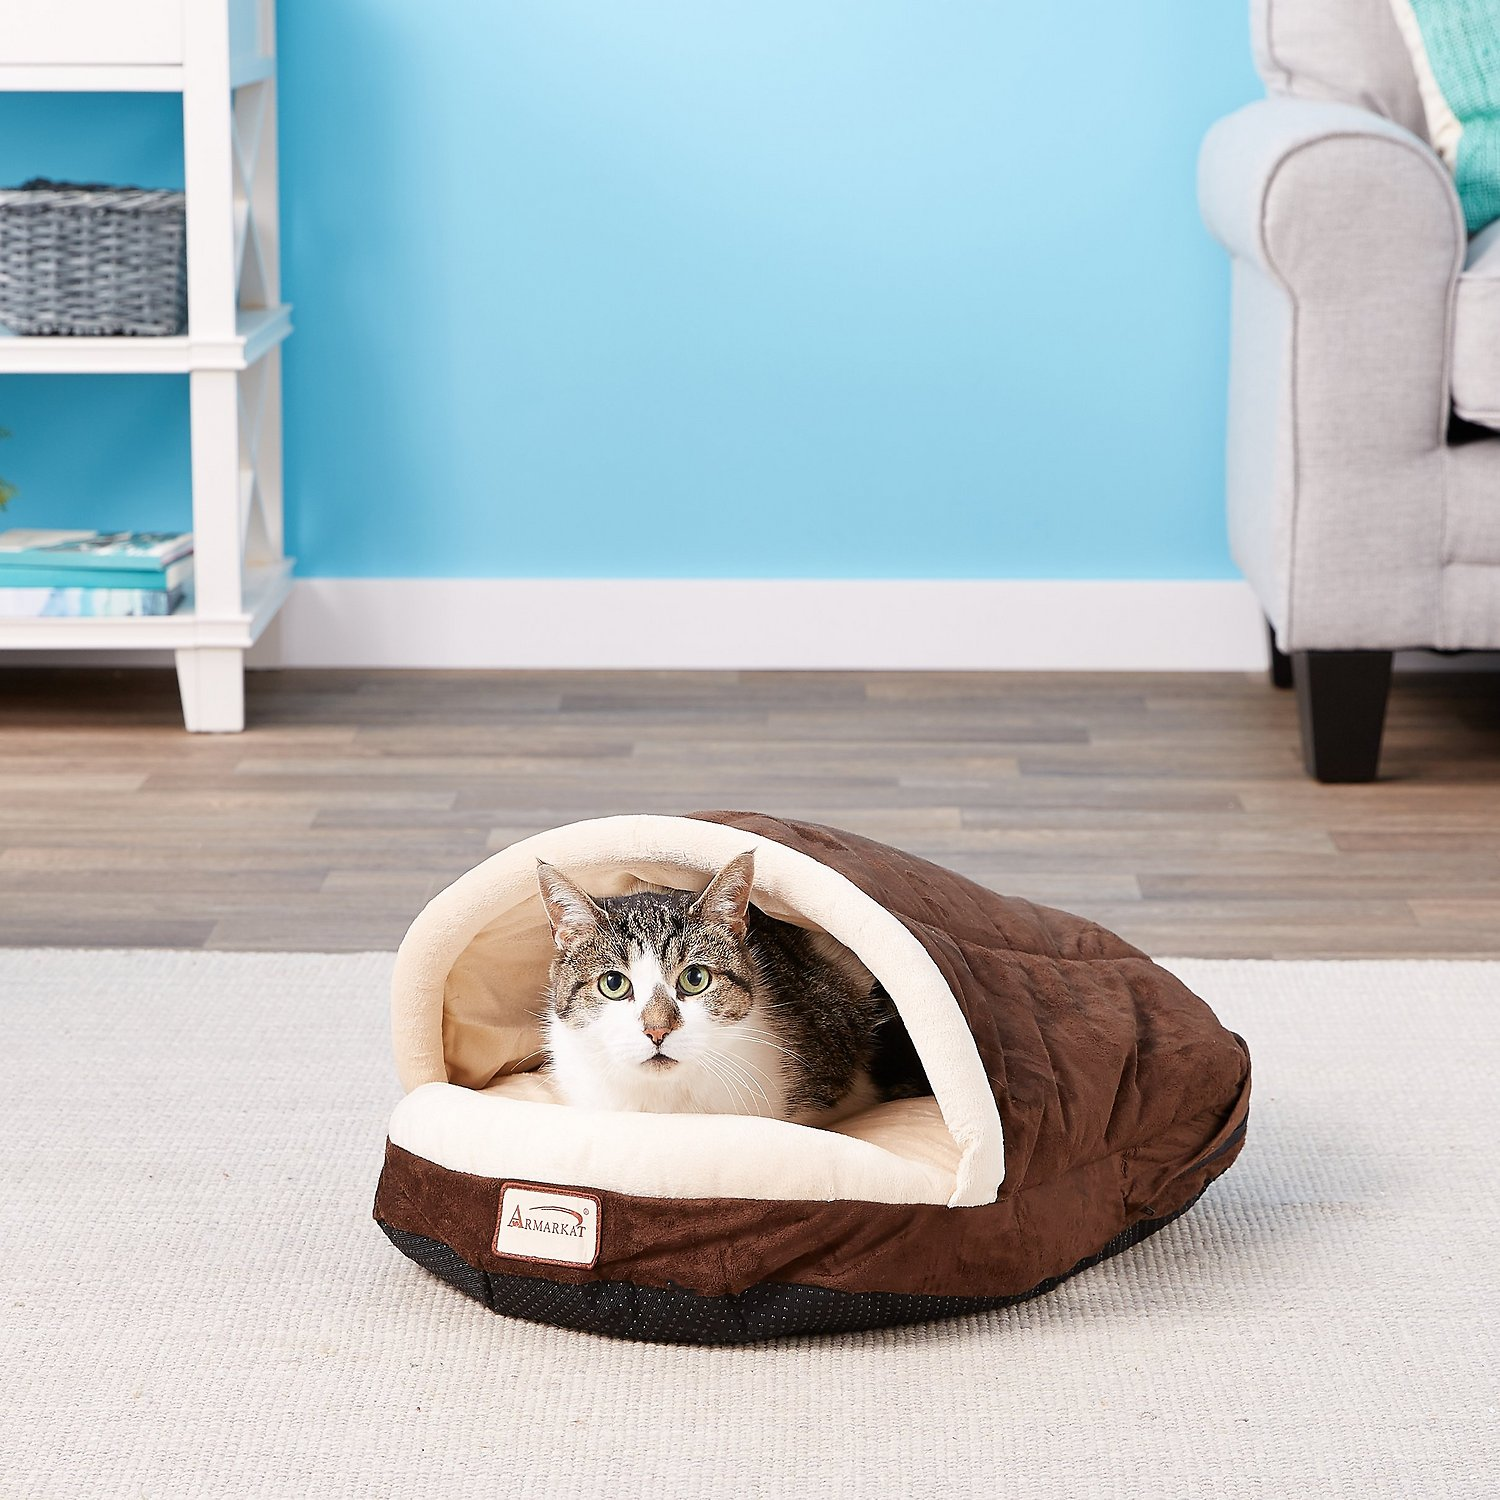 Armarkat Slipper Shape Pet Bed, MochaBeige recommendations